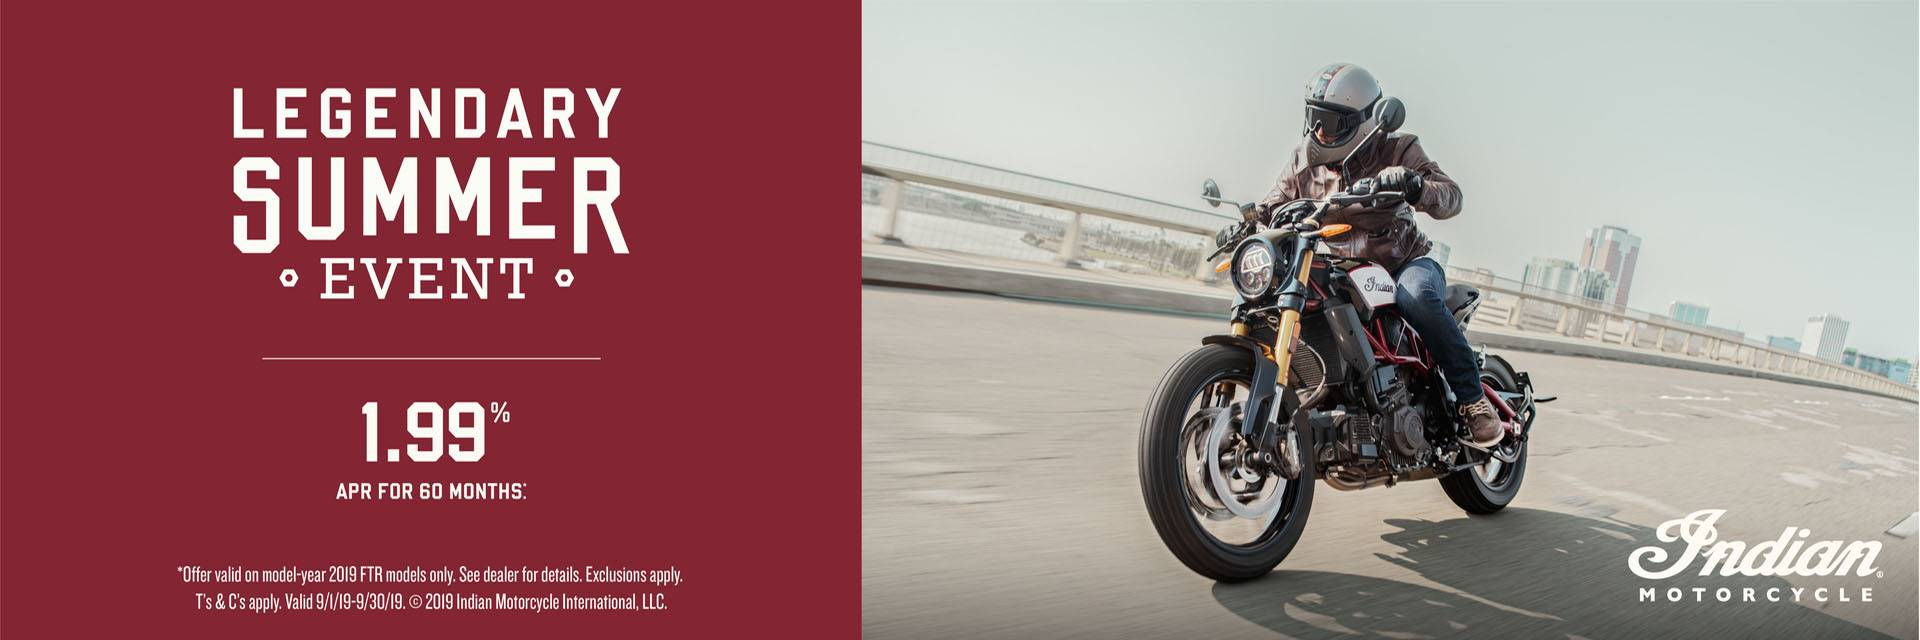 Motorcycles for Sale | Triumph, Indian & More | New & Used